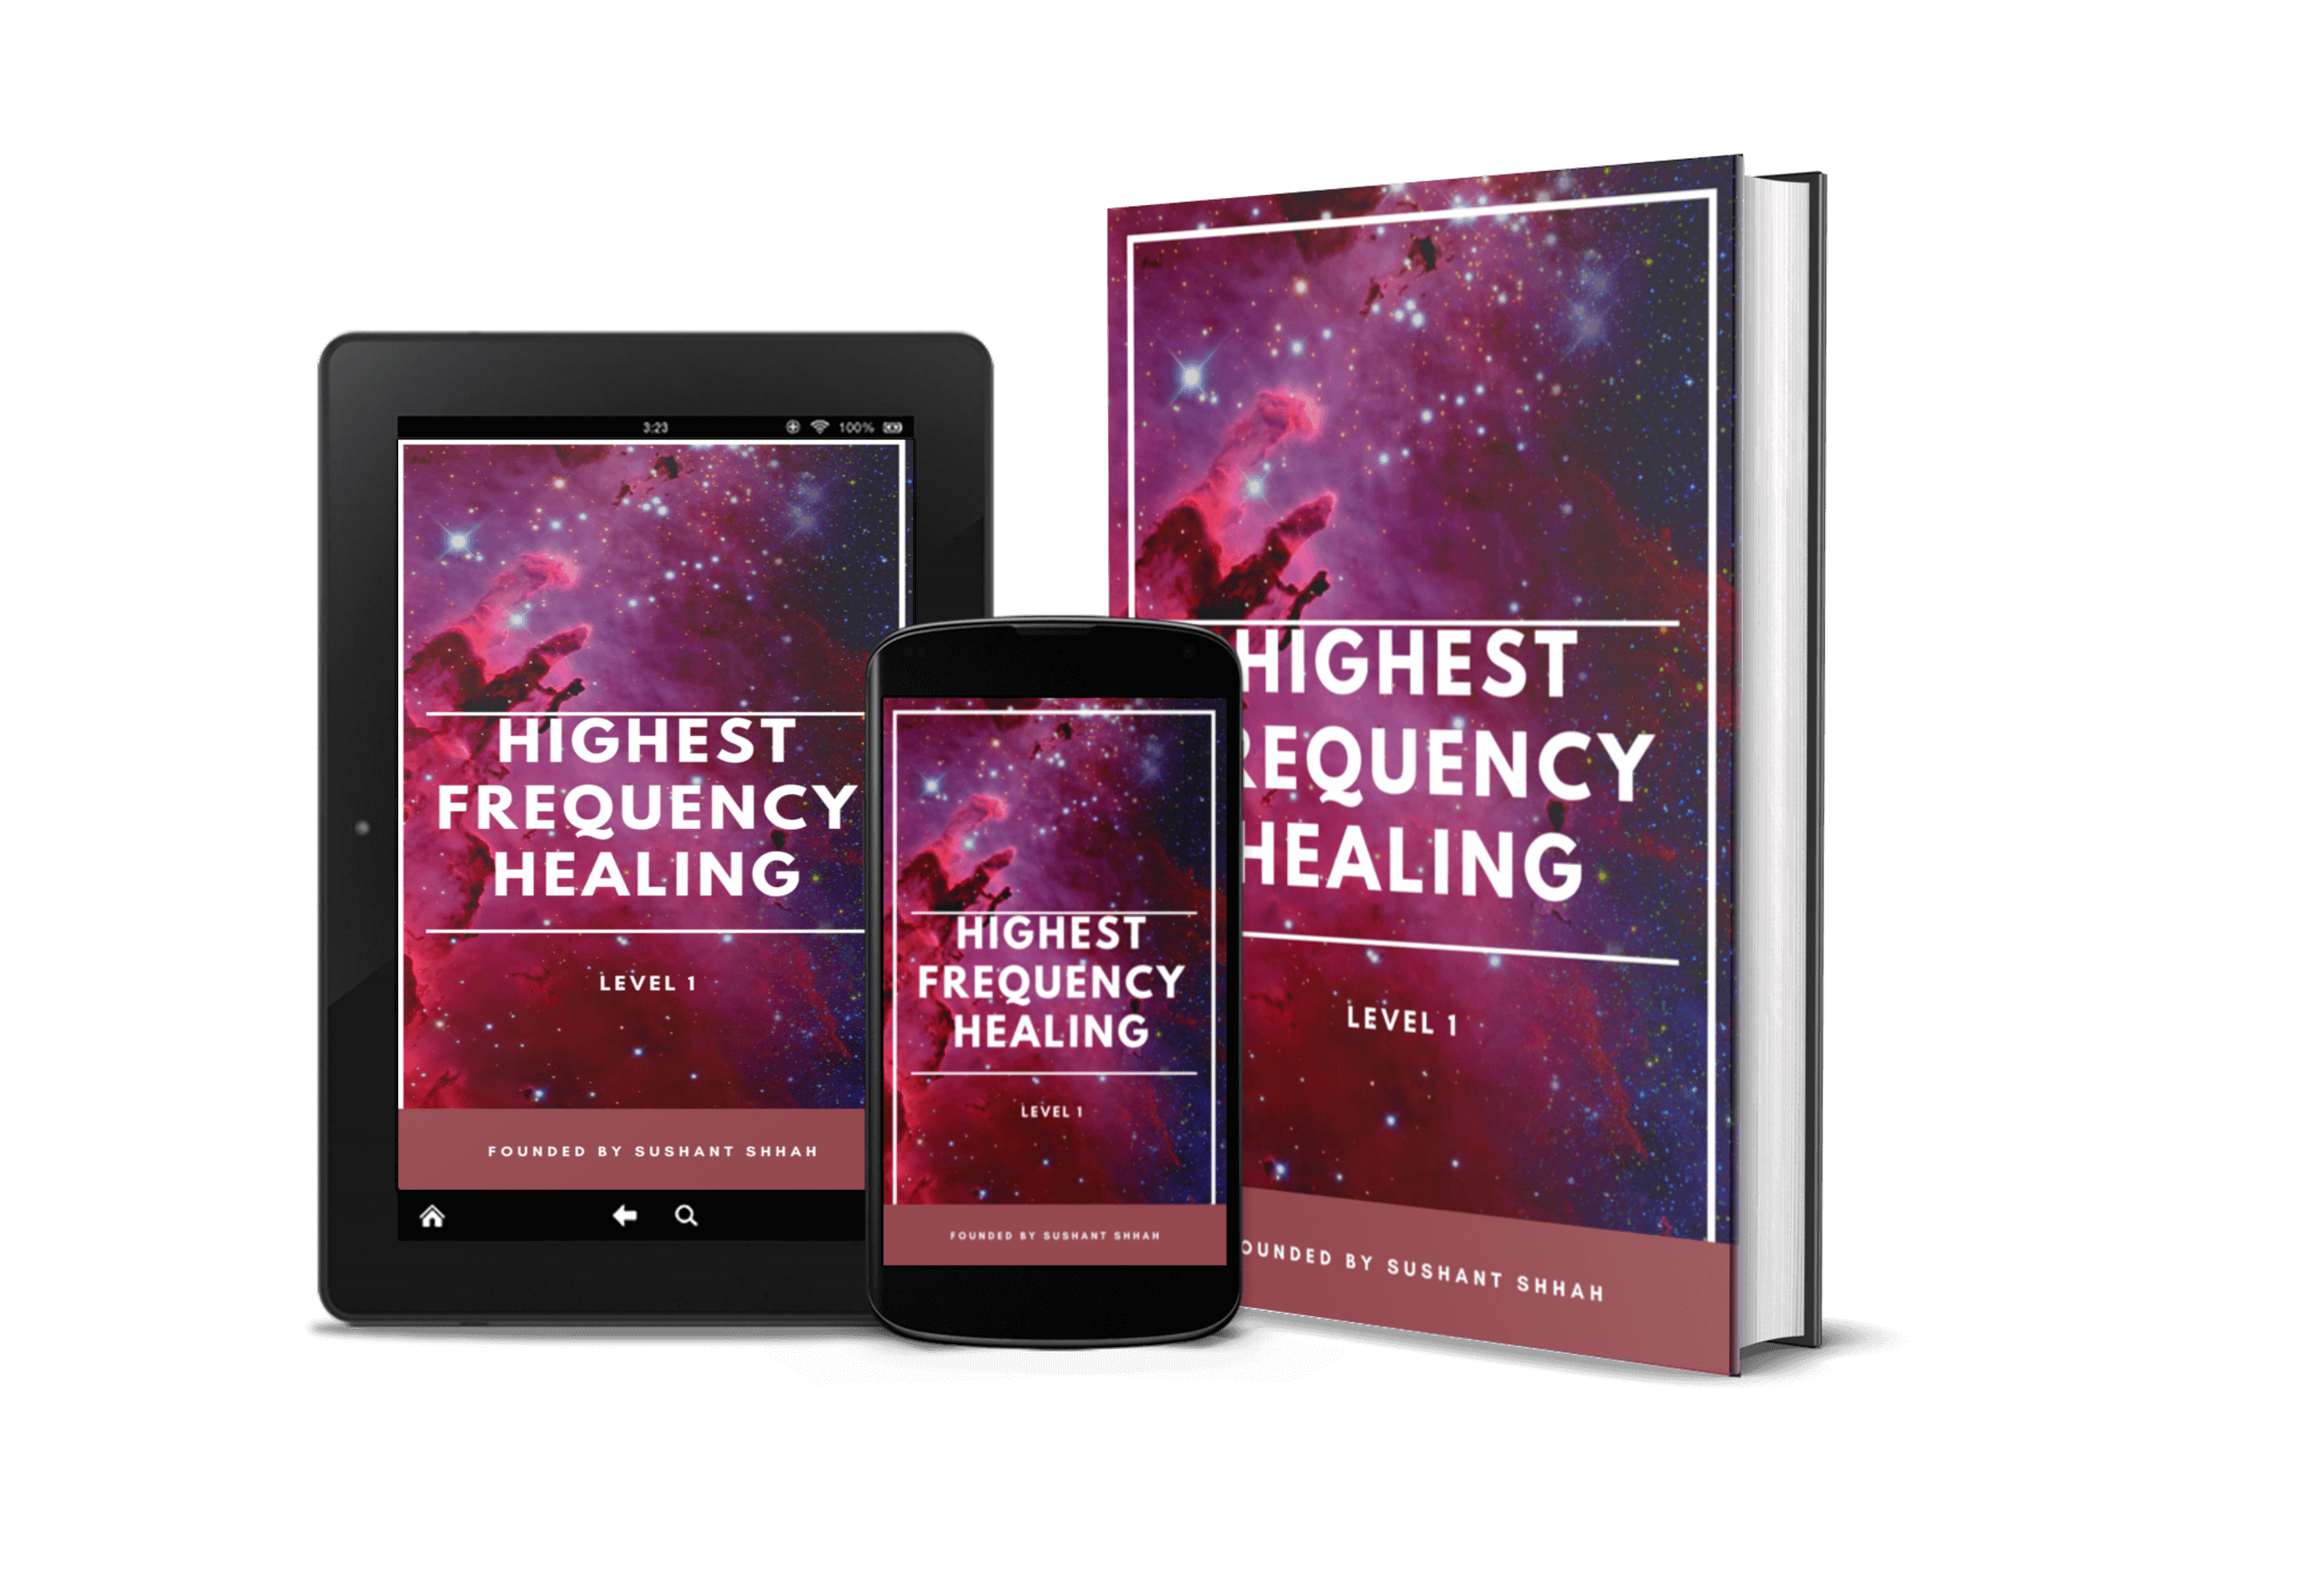 Highest Frequency Healing